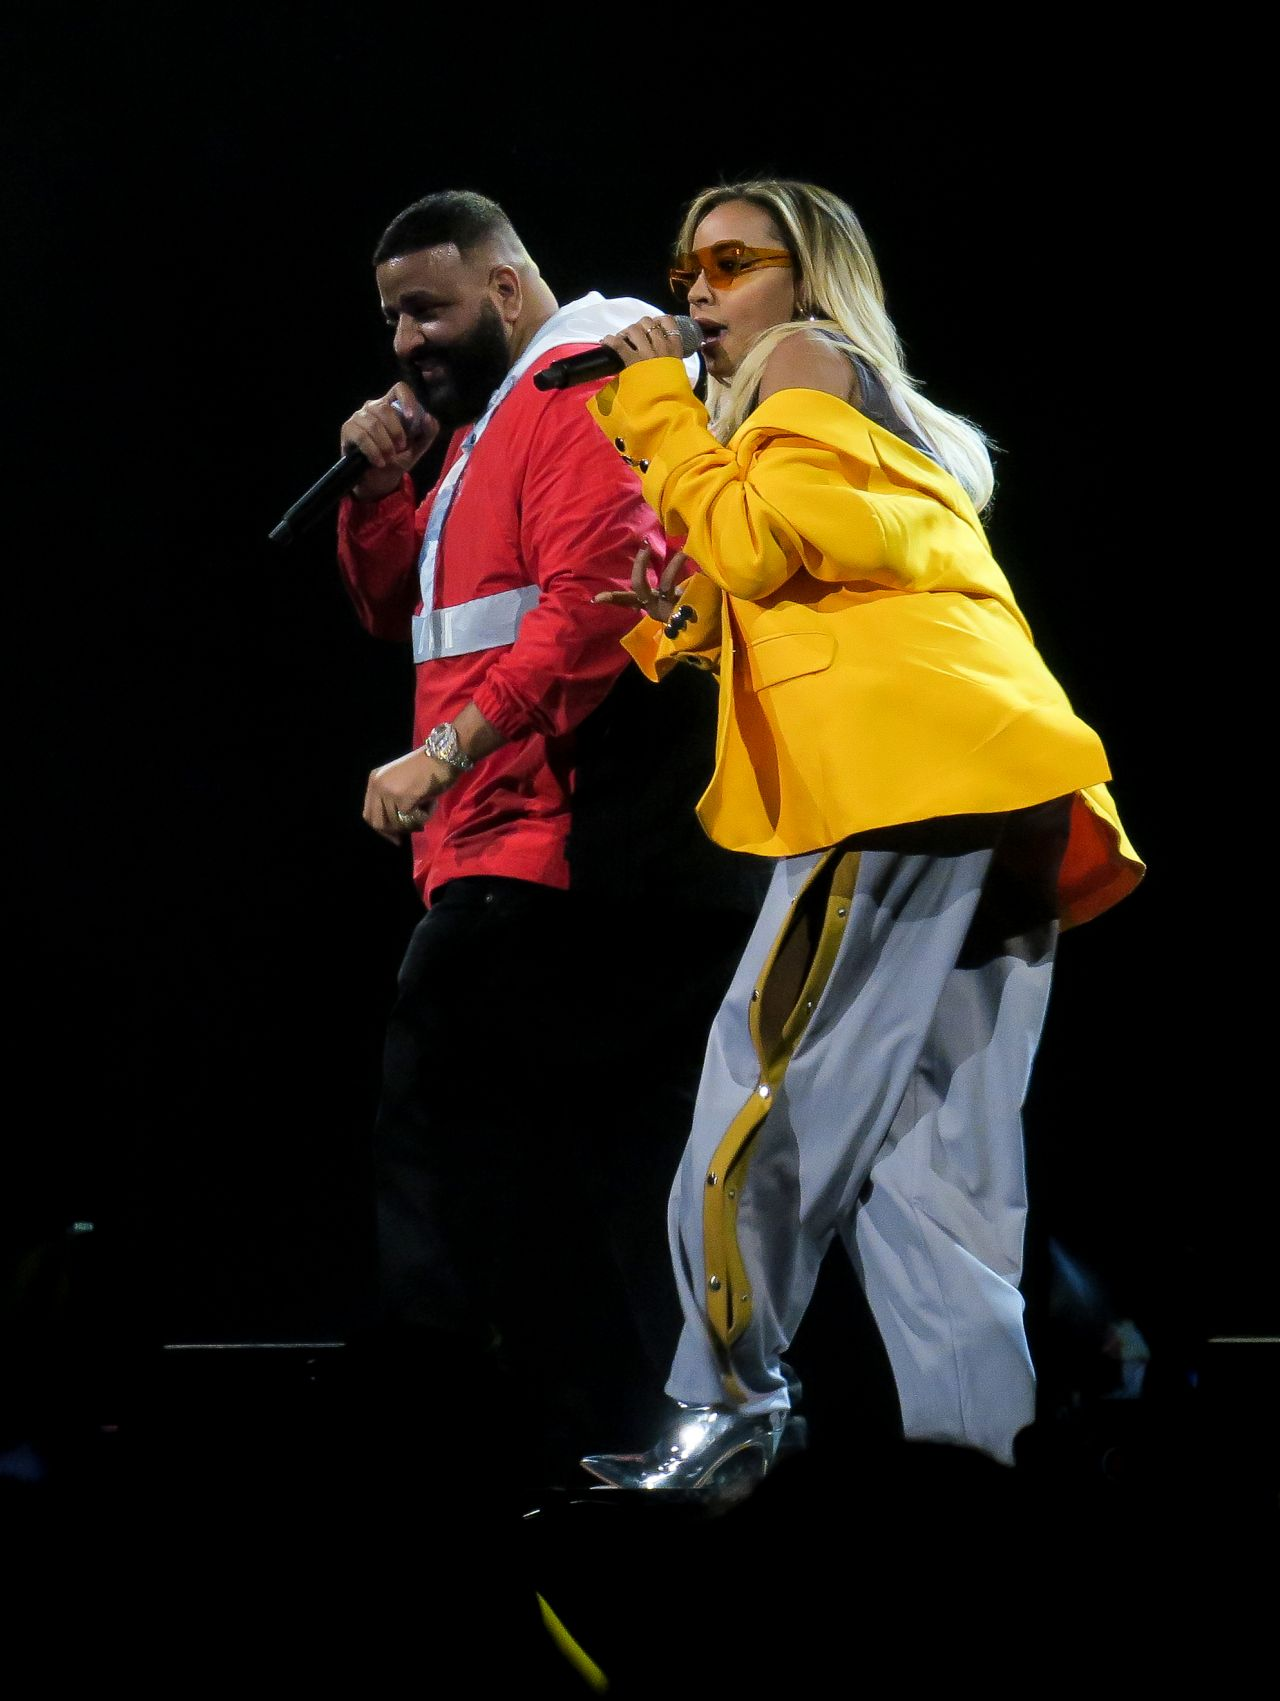 Tinashe On Stage With Dj Khaled At The Forum In Los Angeles